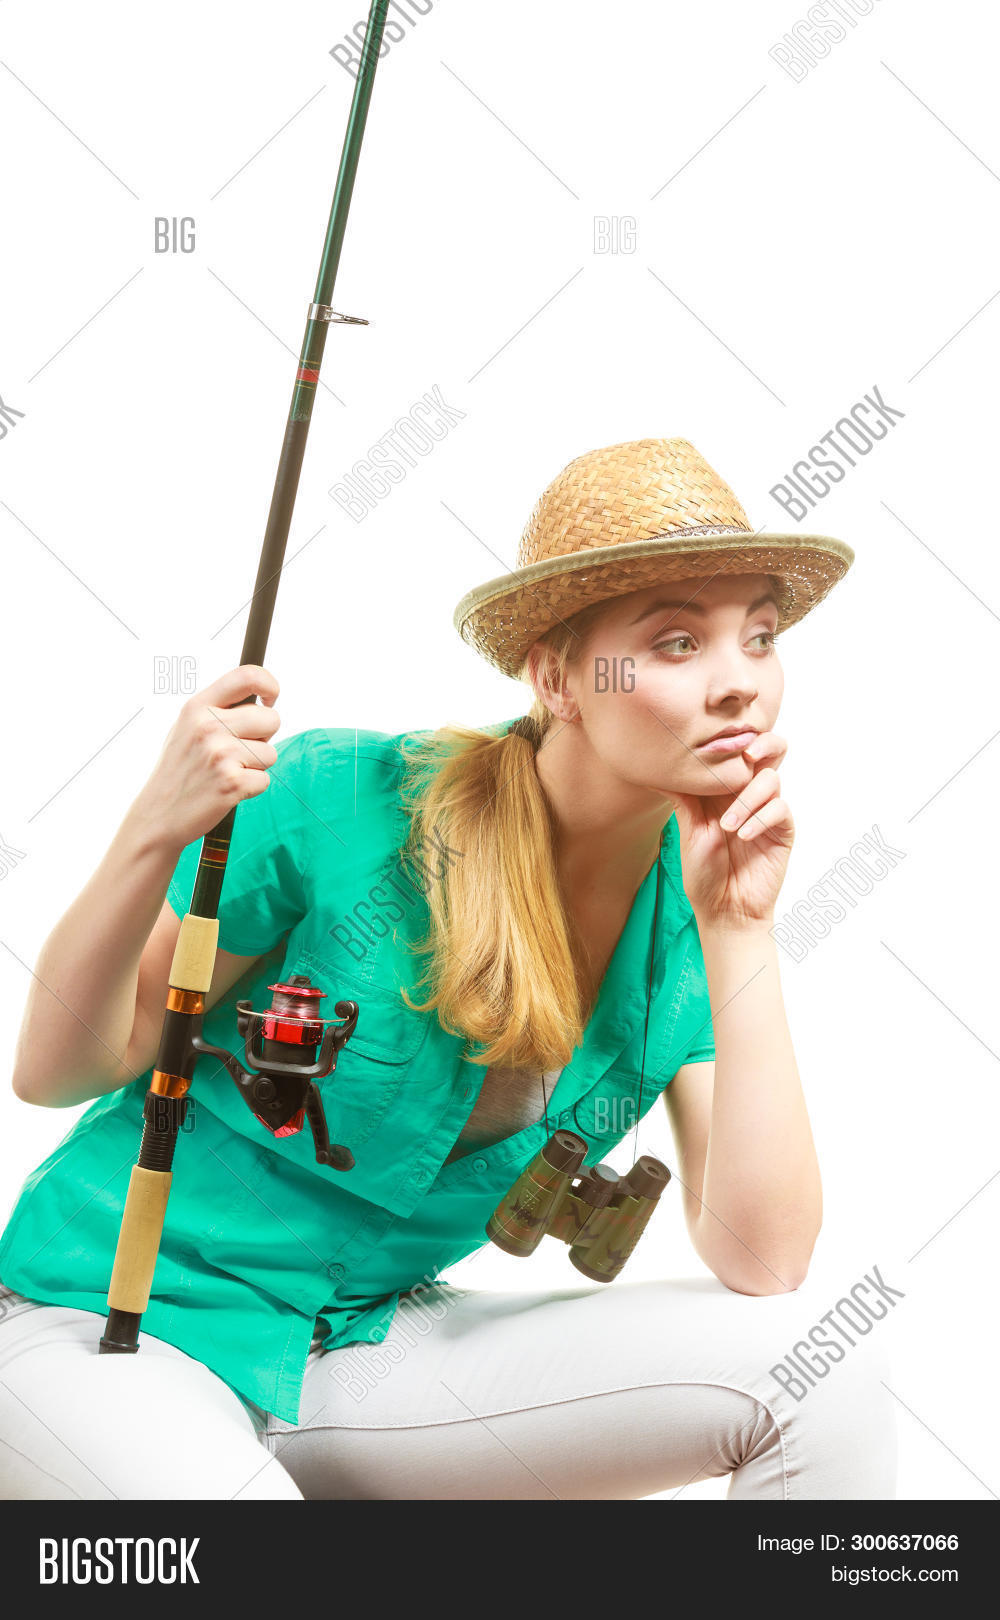 activity,angler,angling,bored,boredom,exhausted,fisher,fisherman,fisherwoman,fishery,fishing,flyfishing,hat,hobby,hunting,isolated,recreation,rod,sleepy,spinning,sport,sportfishing,sun,tired,tiredness,trolling,waggler,woman